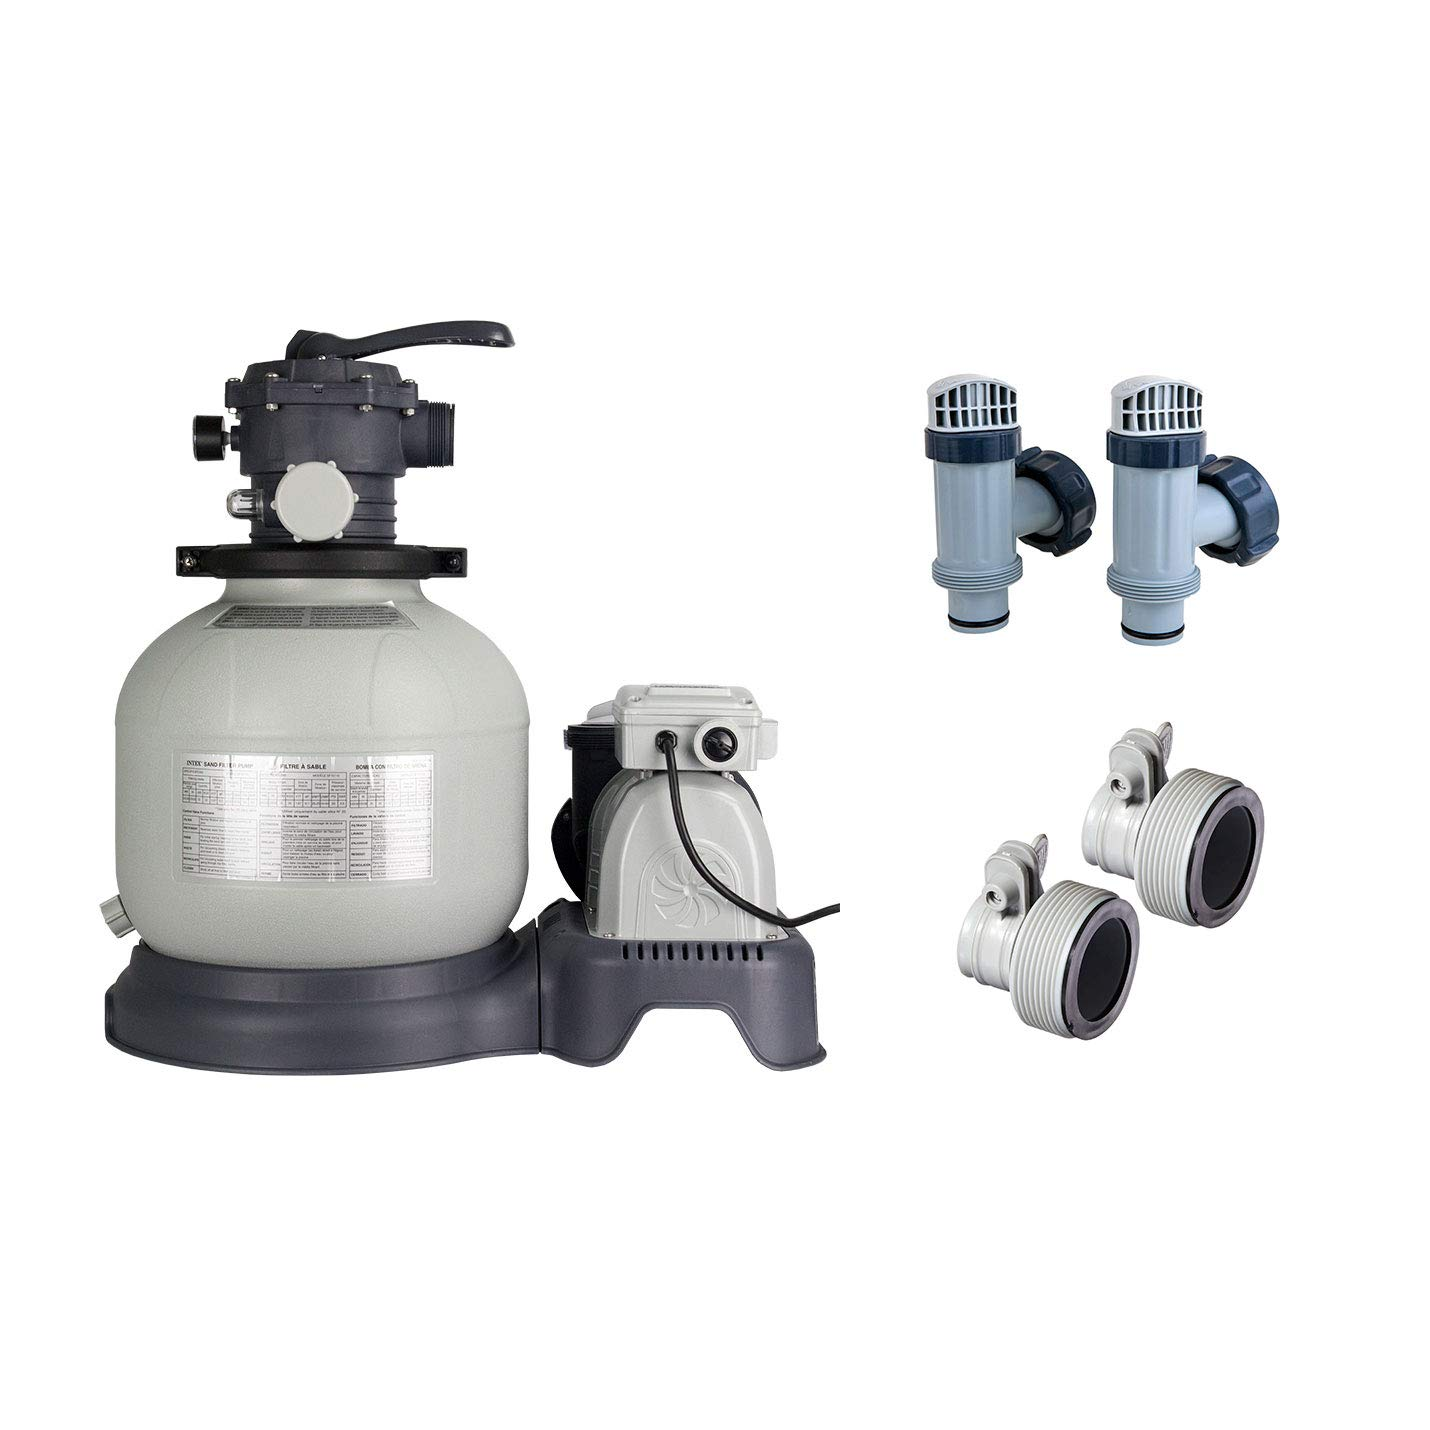 Intex Krystal Clear 2800 GPH Pool Sand Filter Pump + Valves & Adapter B Hoses